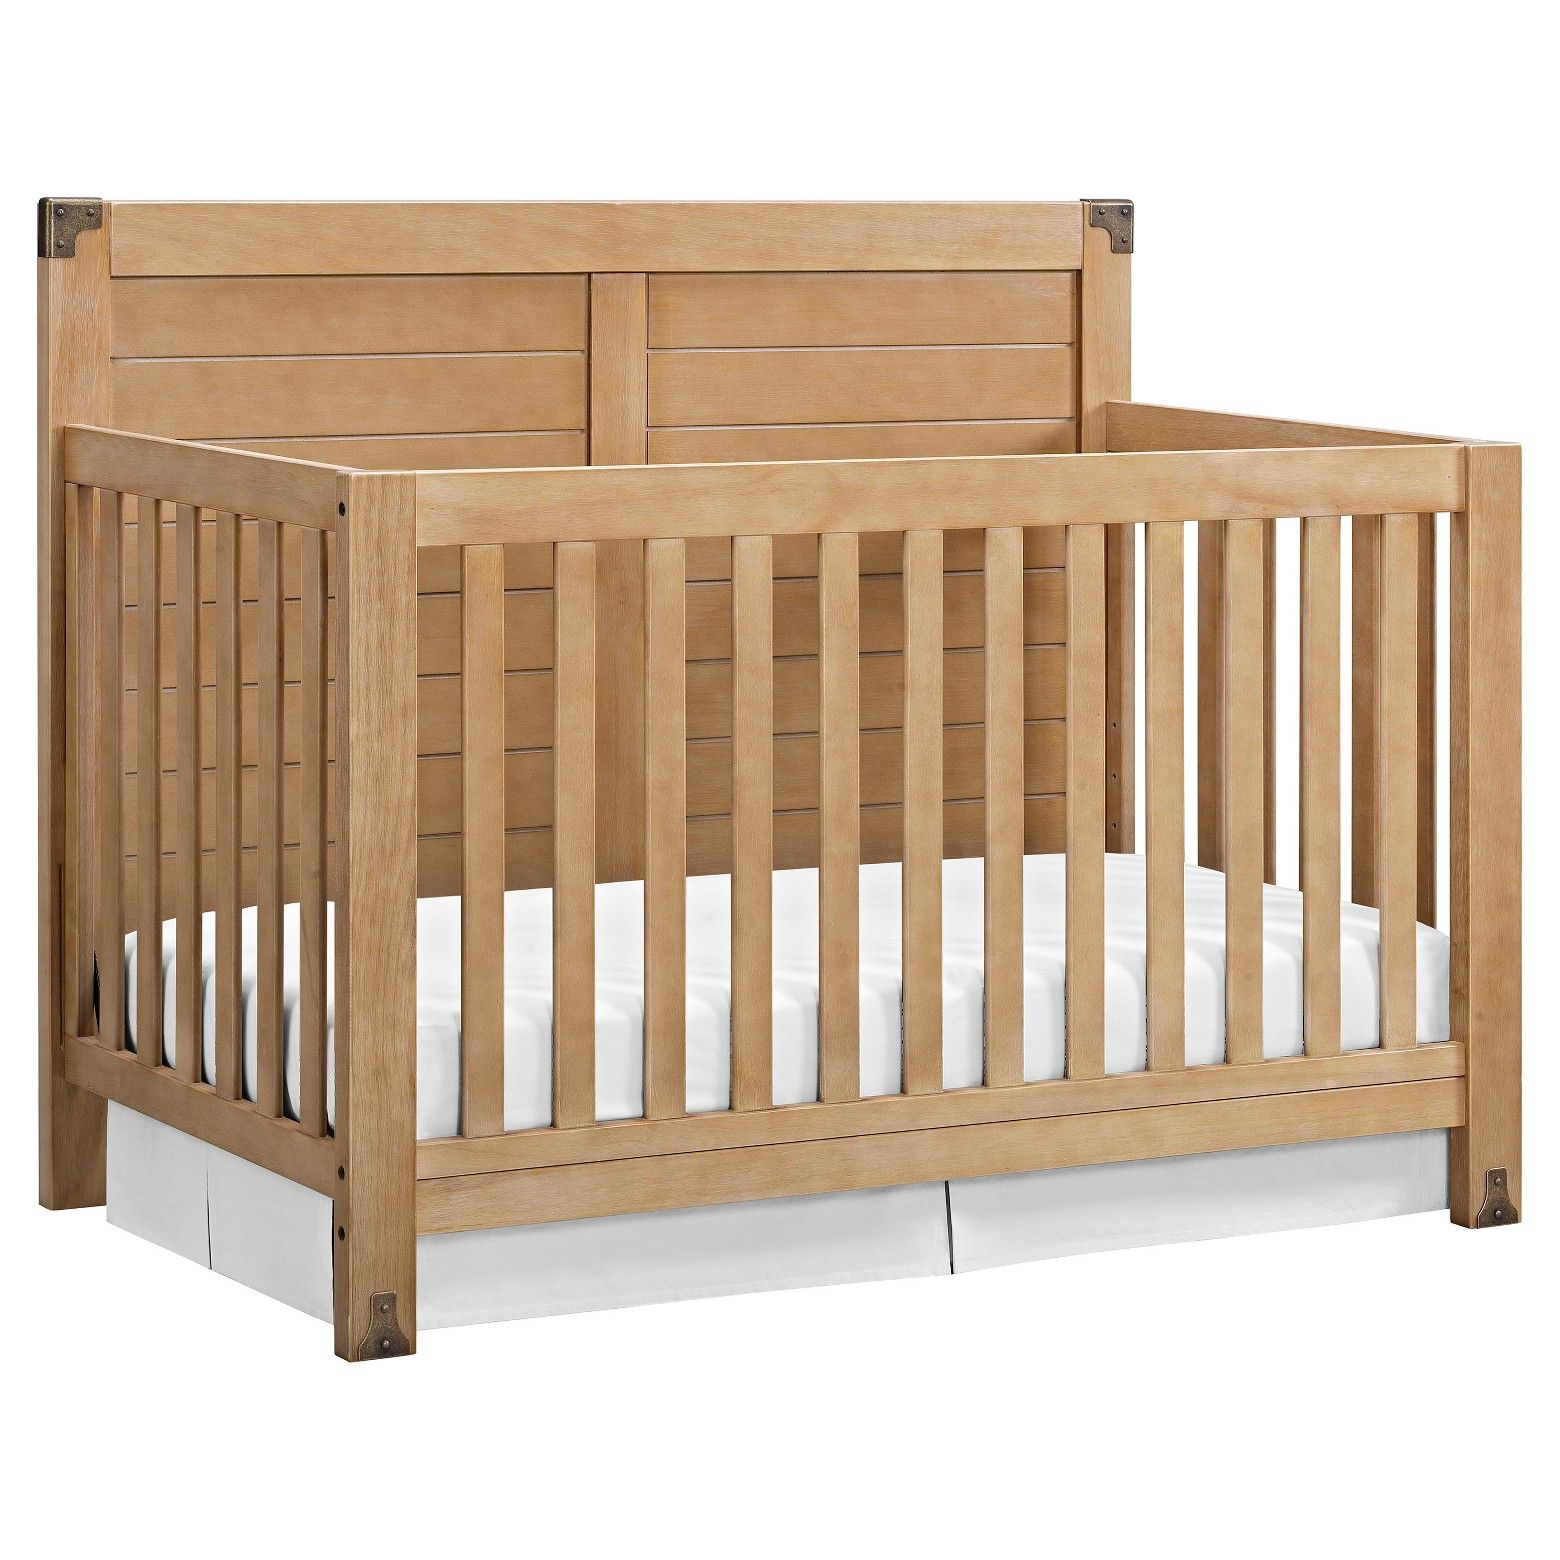 leone palitaly pali cribs pavone products modern finish natural crib handmade by minisponda wooden moka bianco